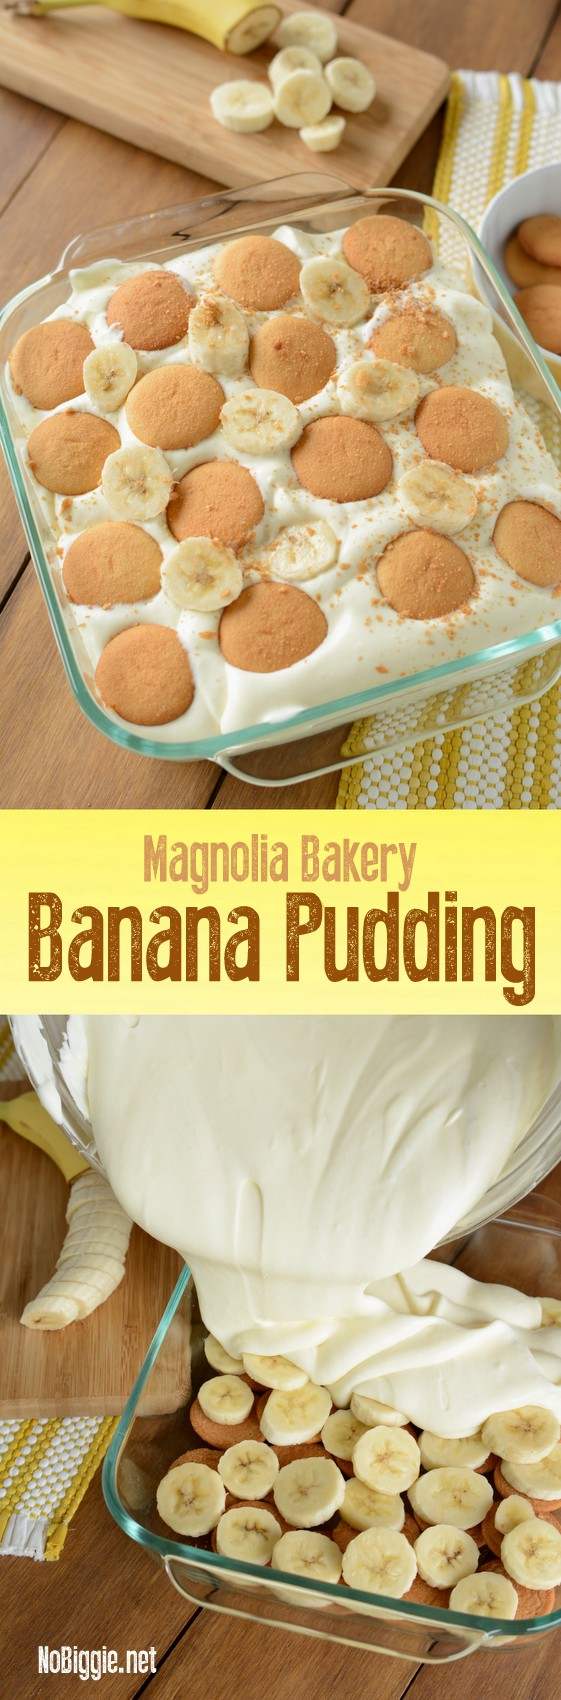 Magnolia Bakery Banana Pudding - copycat recipe! This banana pudding is so good, plus it feeds a crowd! #bananapudding #magnoliabakerybananapudding #comfortfood #sweettreats